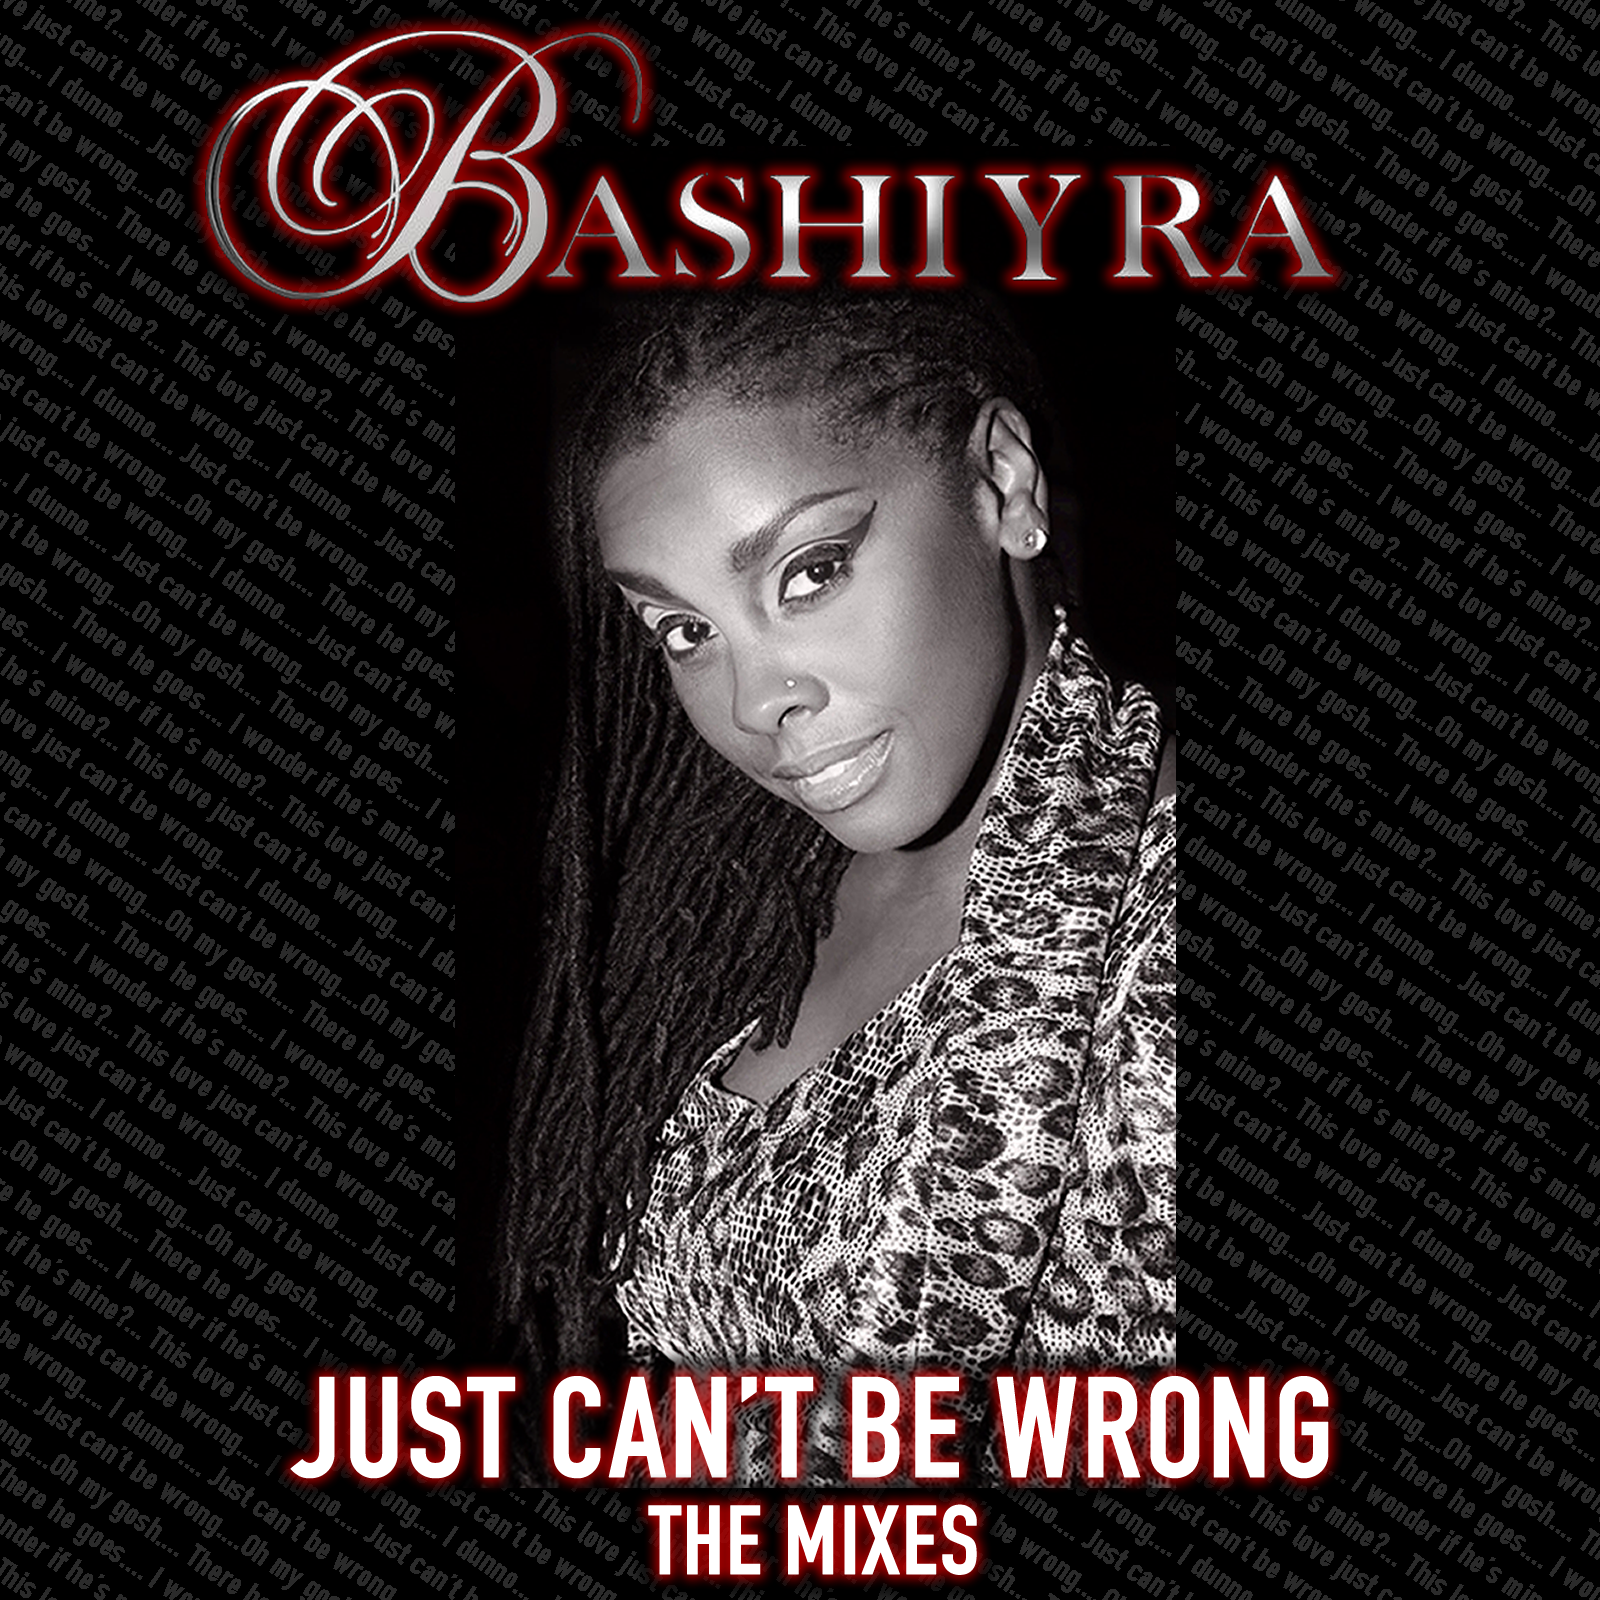 JUST CAN'T BE WRONG The Mixes (Artwork) BASHIYRA